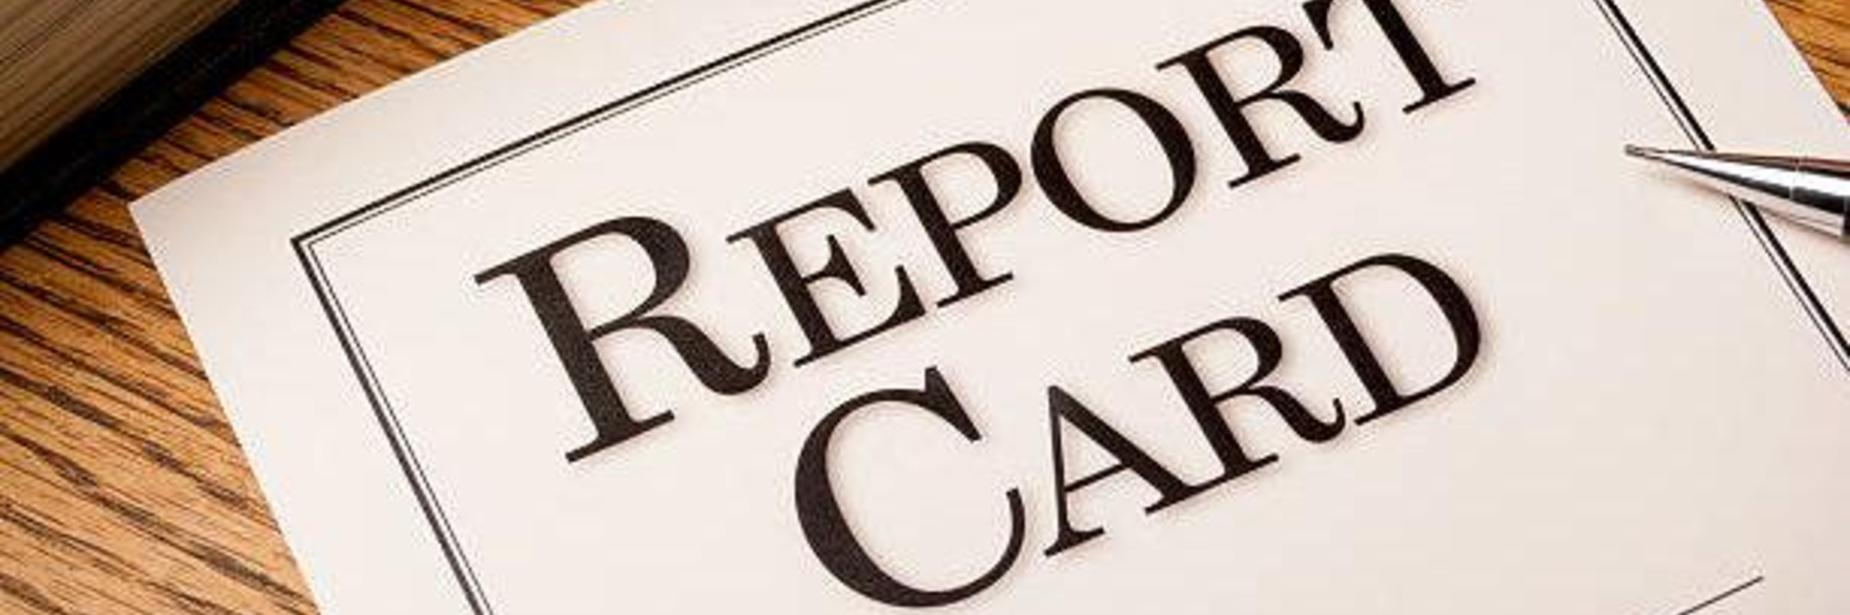 Report Cards January 25th